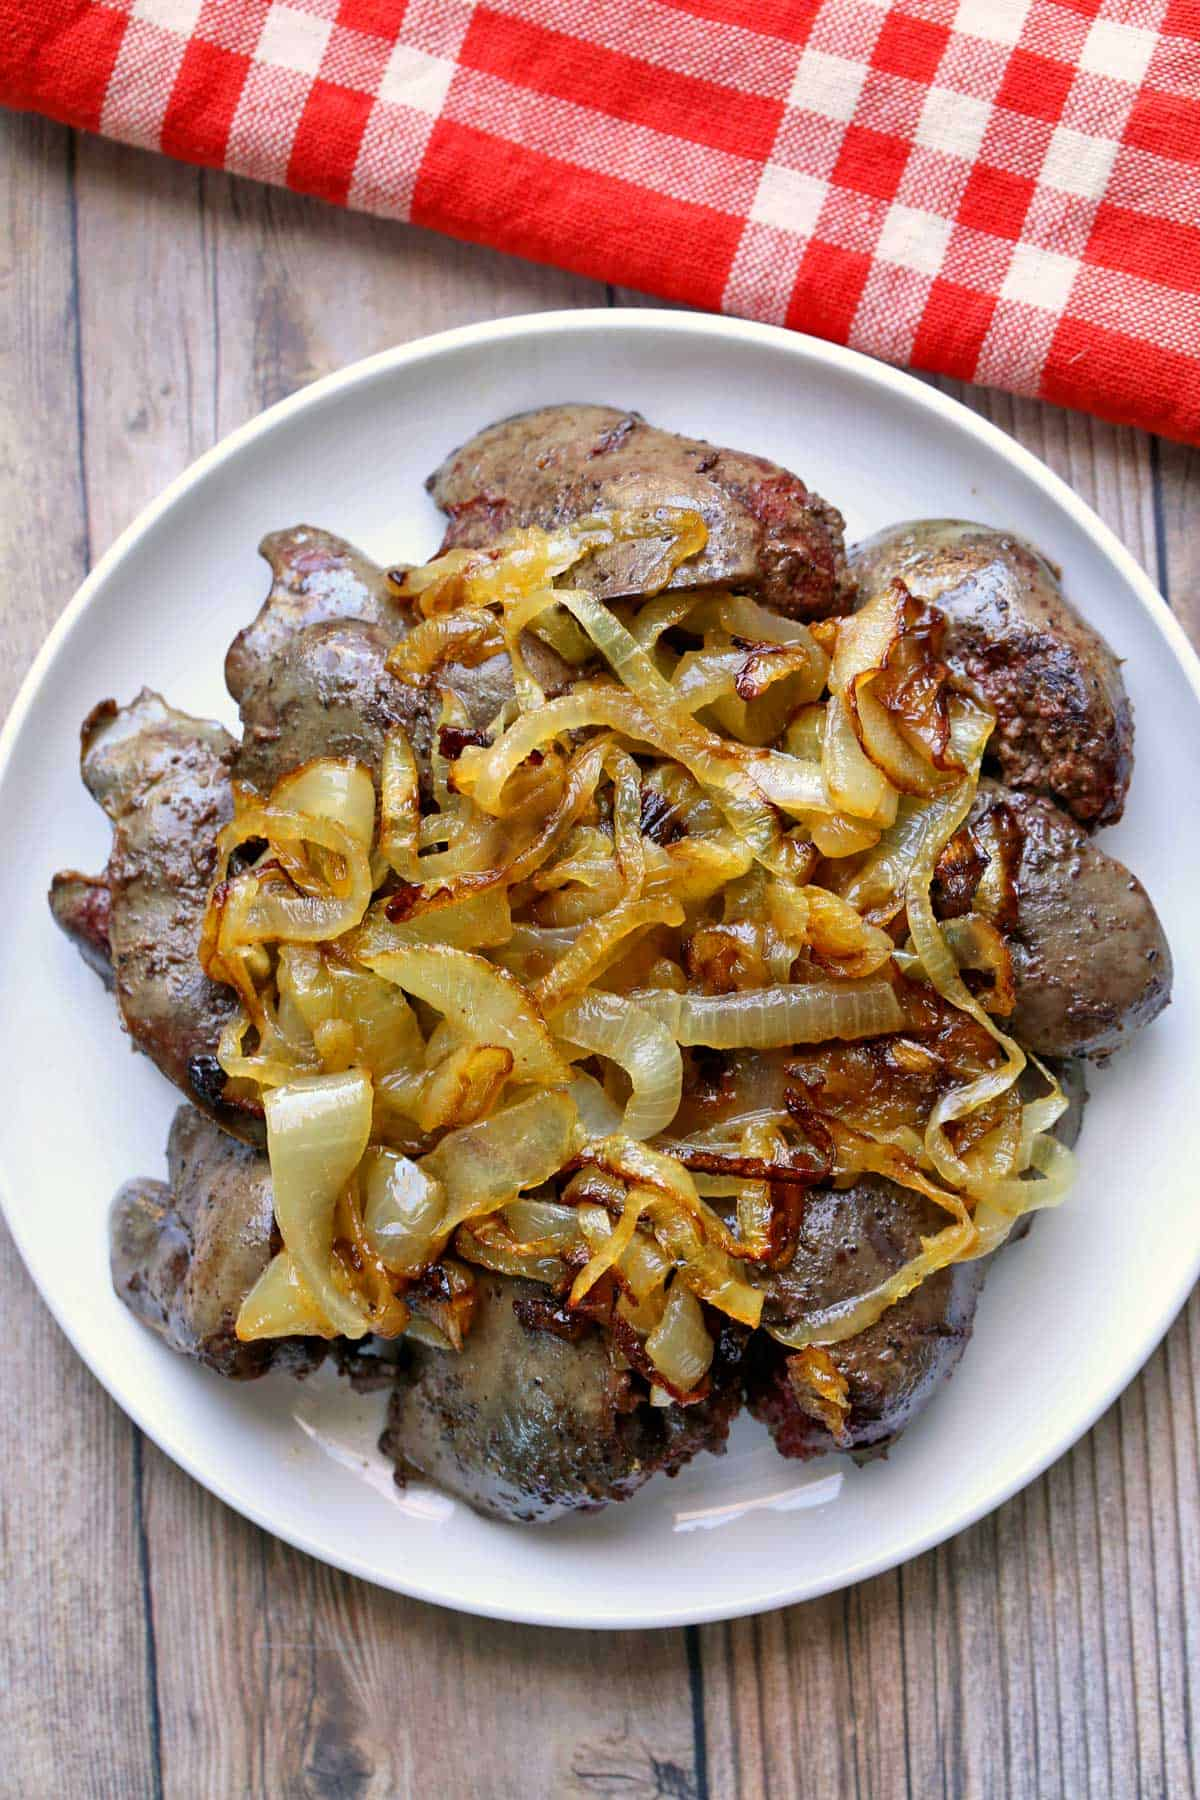 Pan-fried chicken livers topped with onions, served on a white plate.